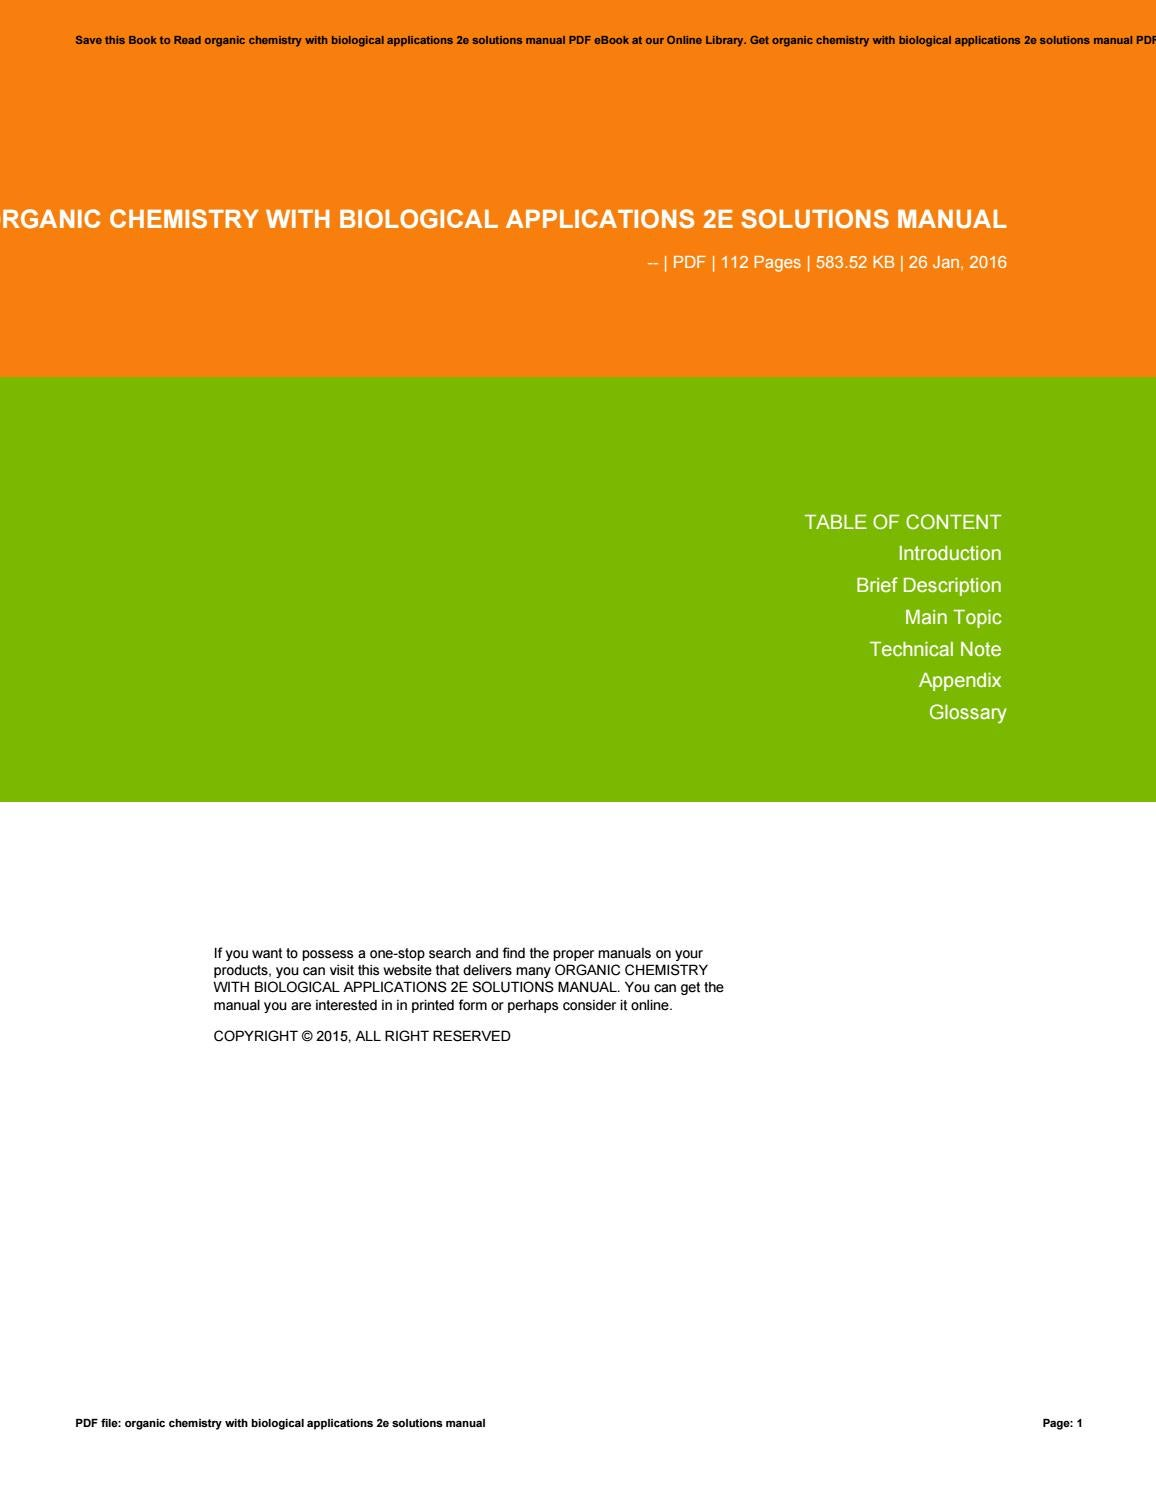 Organic chemistry with biological applications 2e solutions manual by  barryogorman36 - issuu